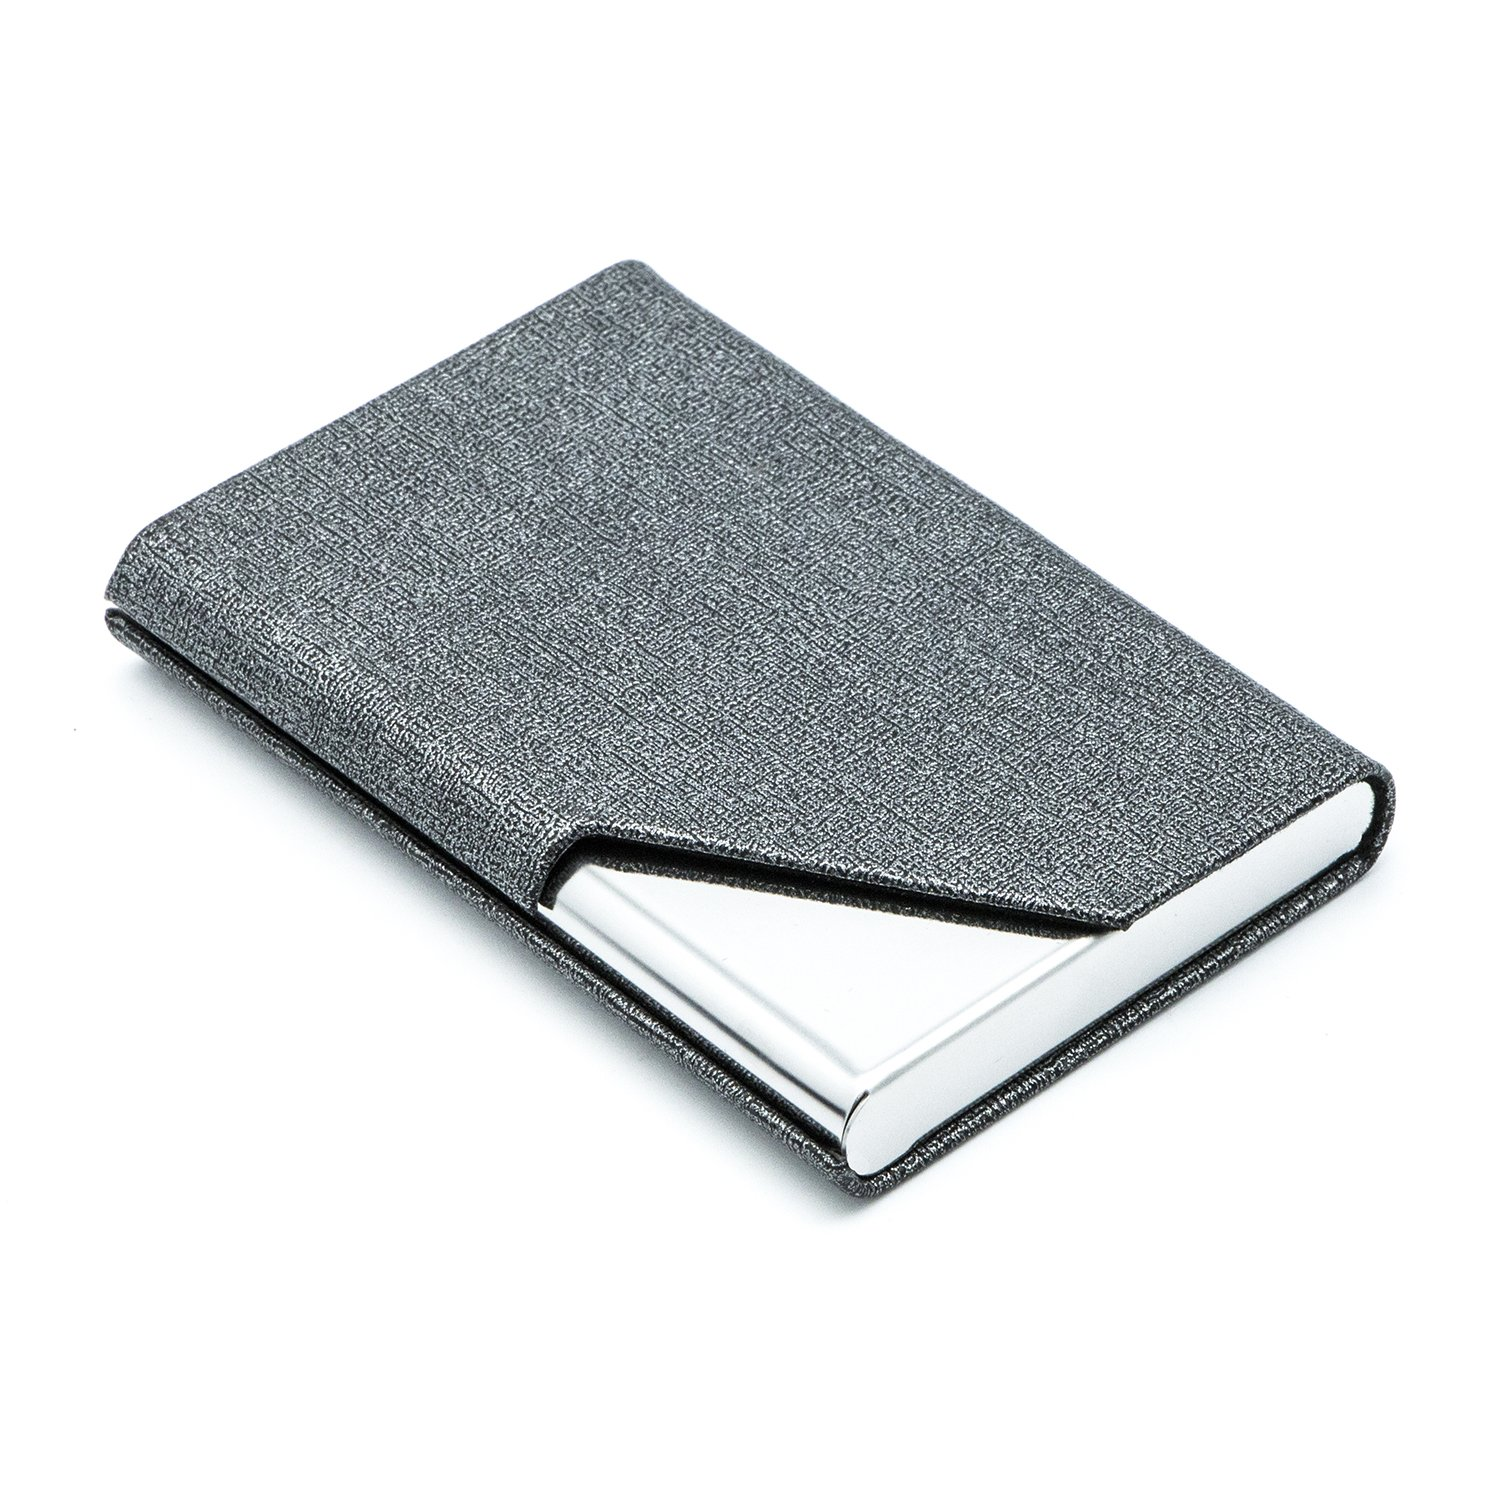 c53cf52ba8b93 Business Name Card Holder Luxury PU Leather    Stainless Steel Multi Card  Case